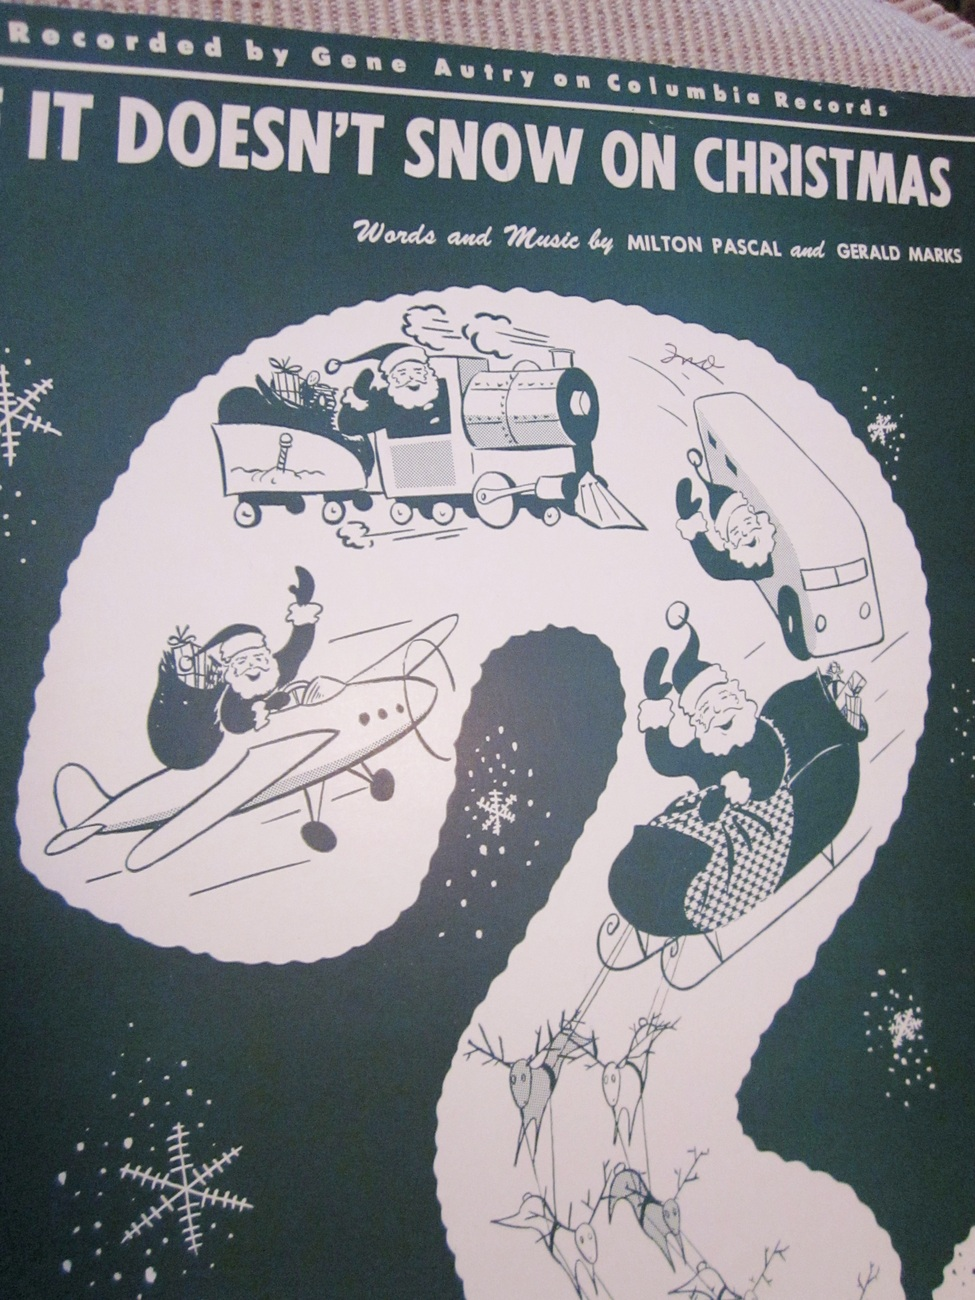 Vintage Sheet Music If It Doesn't Snow On Christmas by Pascal & Marks